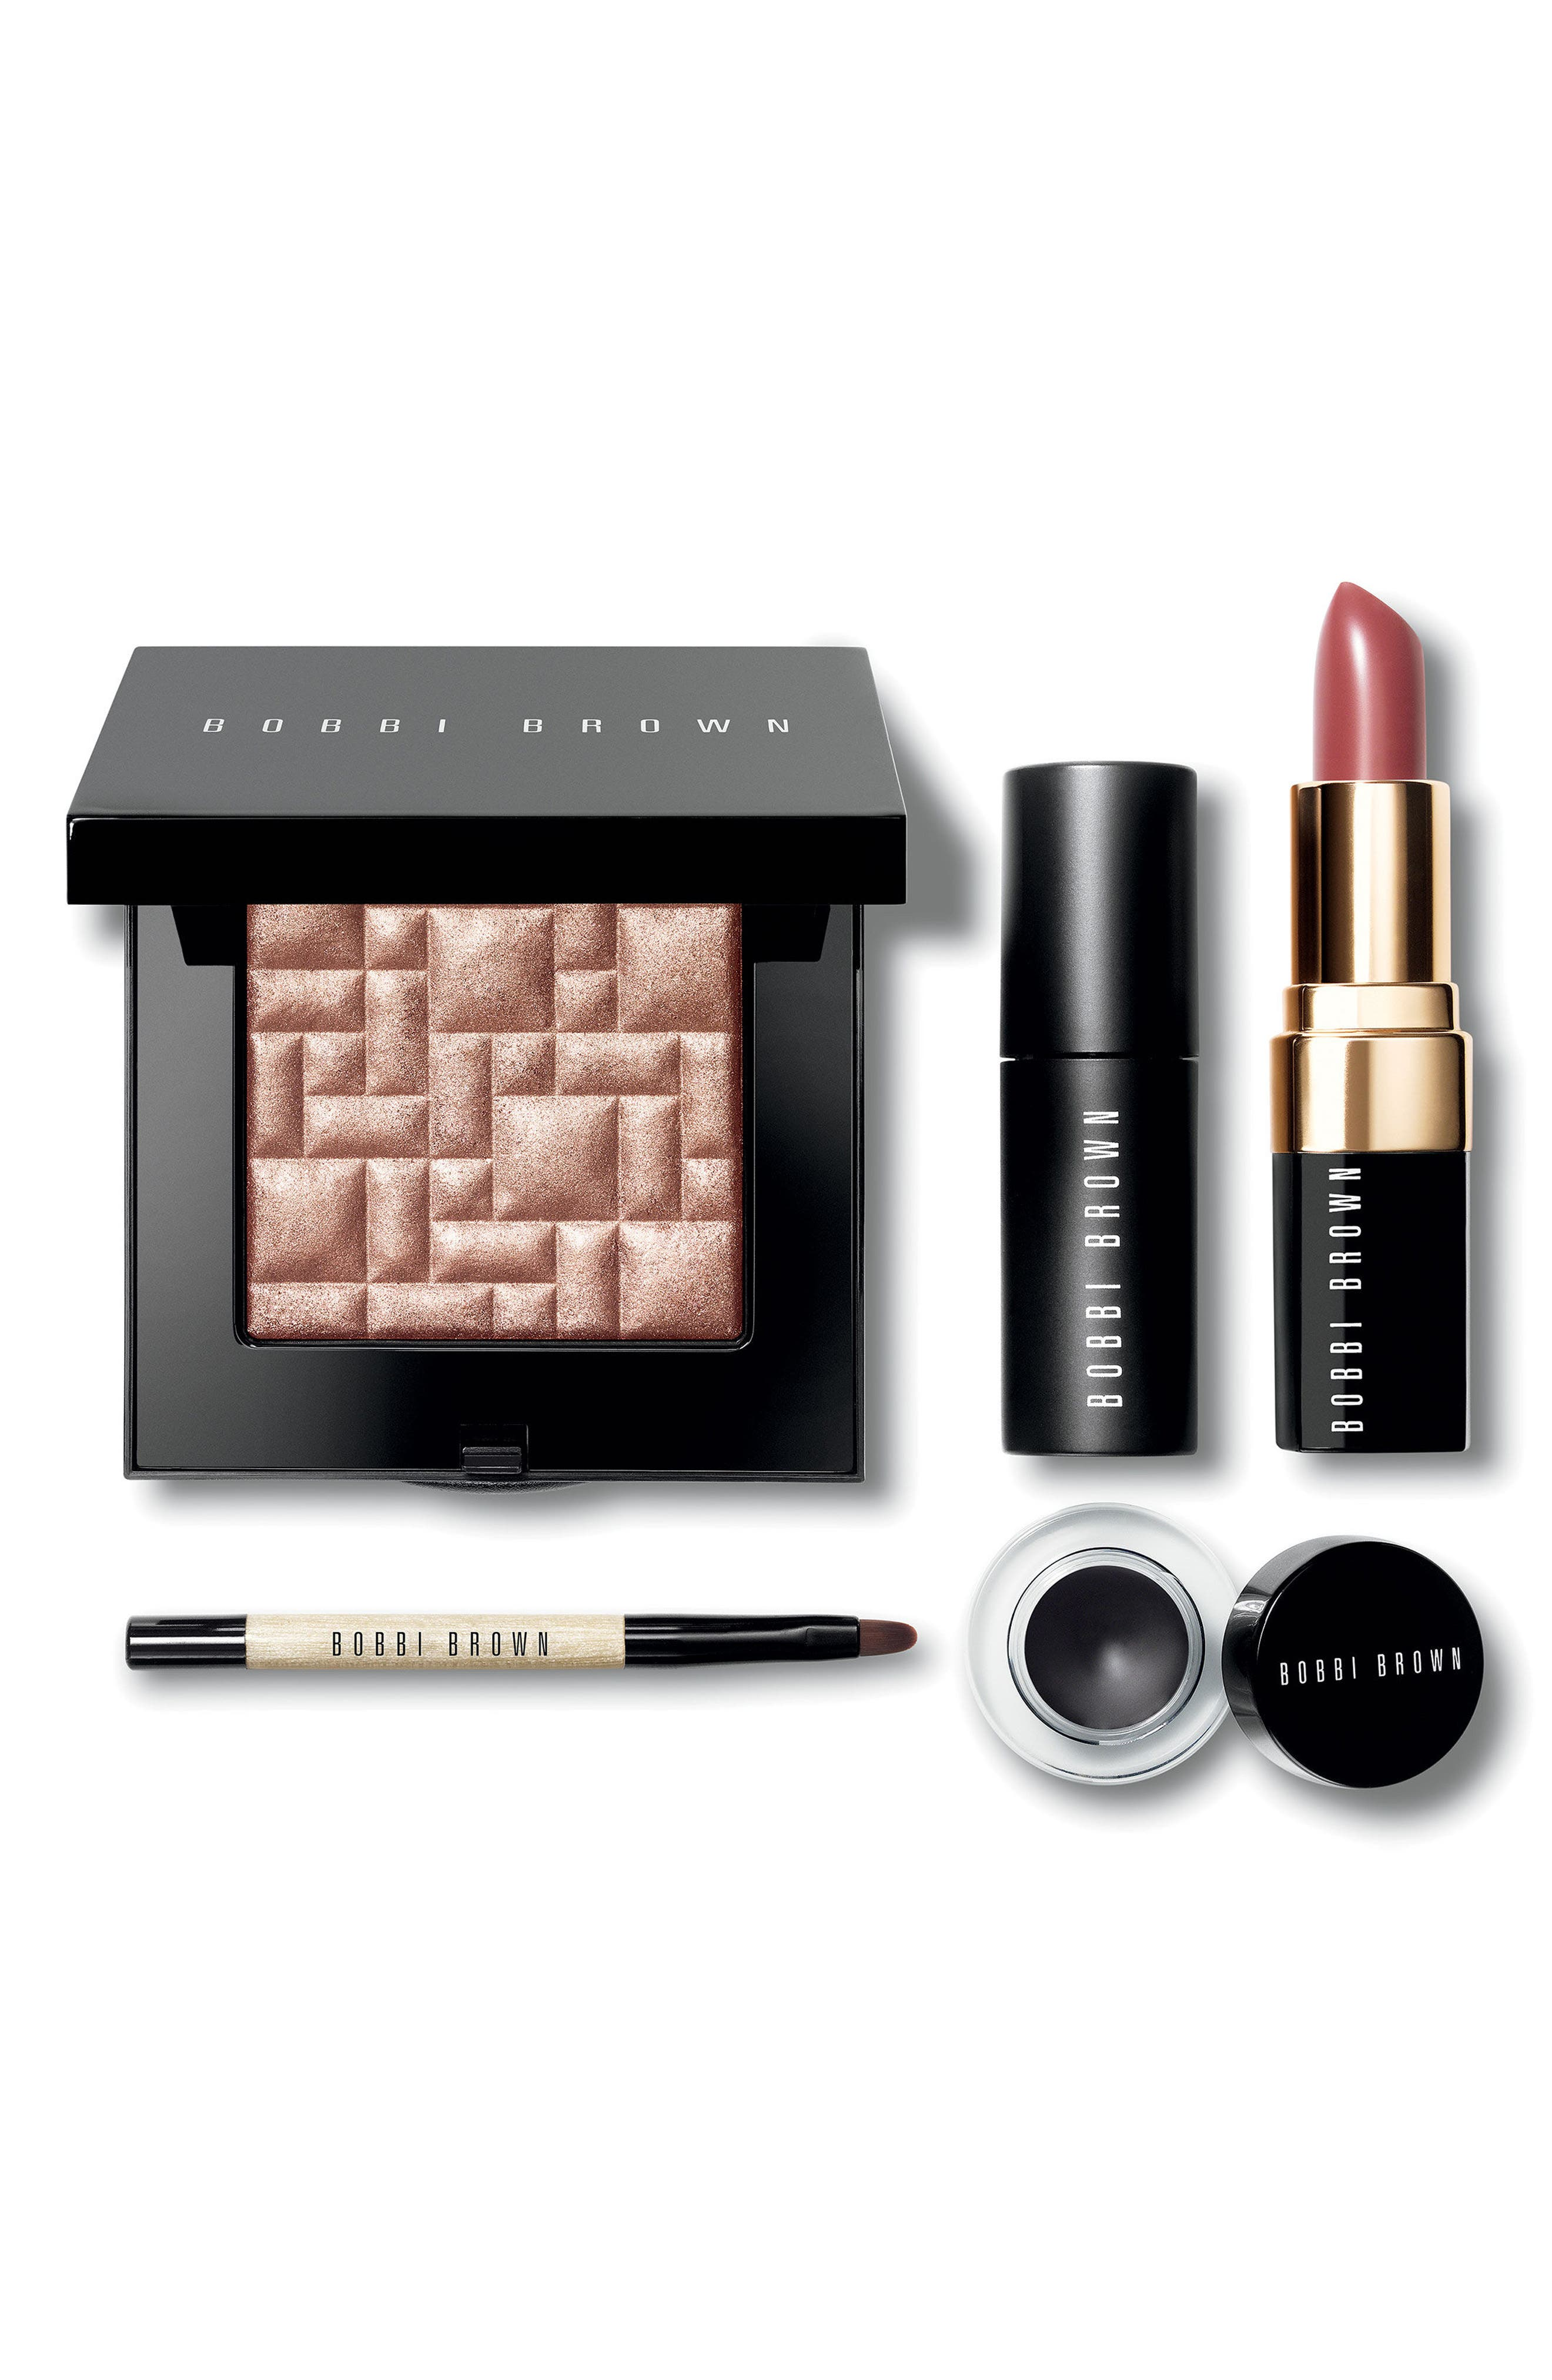 Main Image - Bobbi Brown Style File After Hours Eye, Cheek & Lip Kit (Nordstrom Exclusive) ($117 Value)